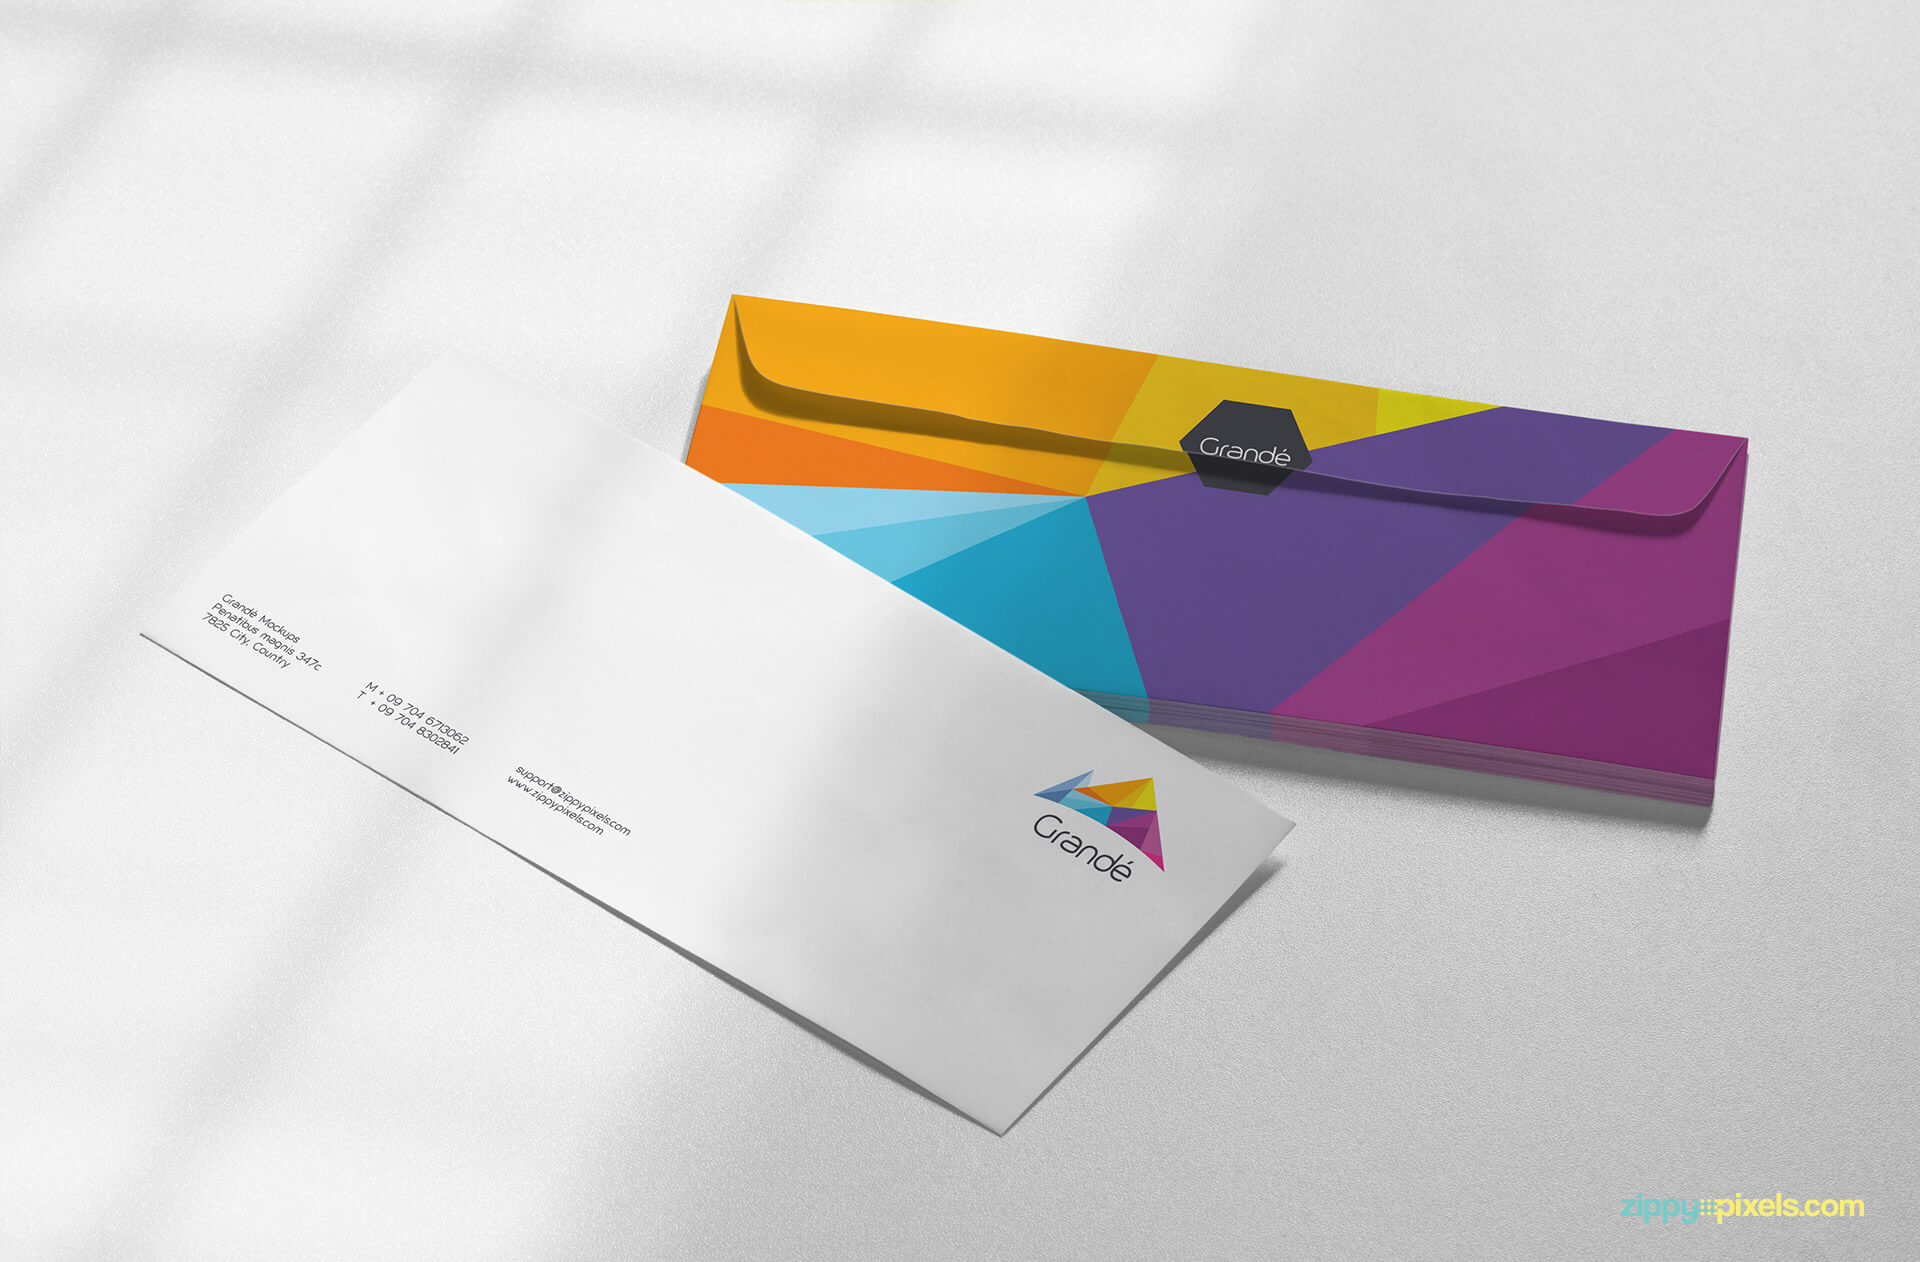 Marvelous Stationery Mockup Of 2 Envelopes